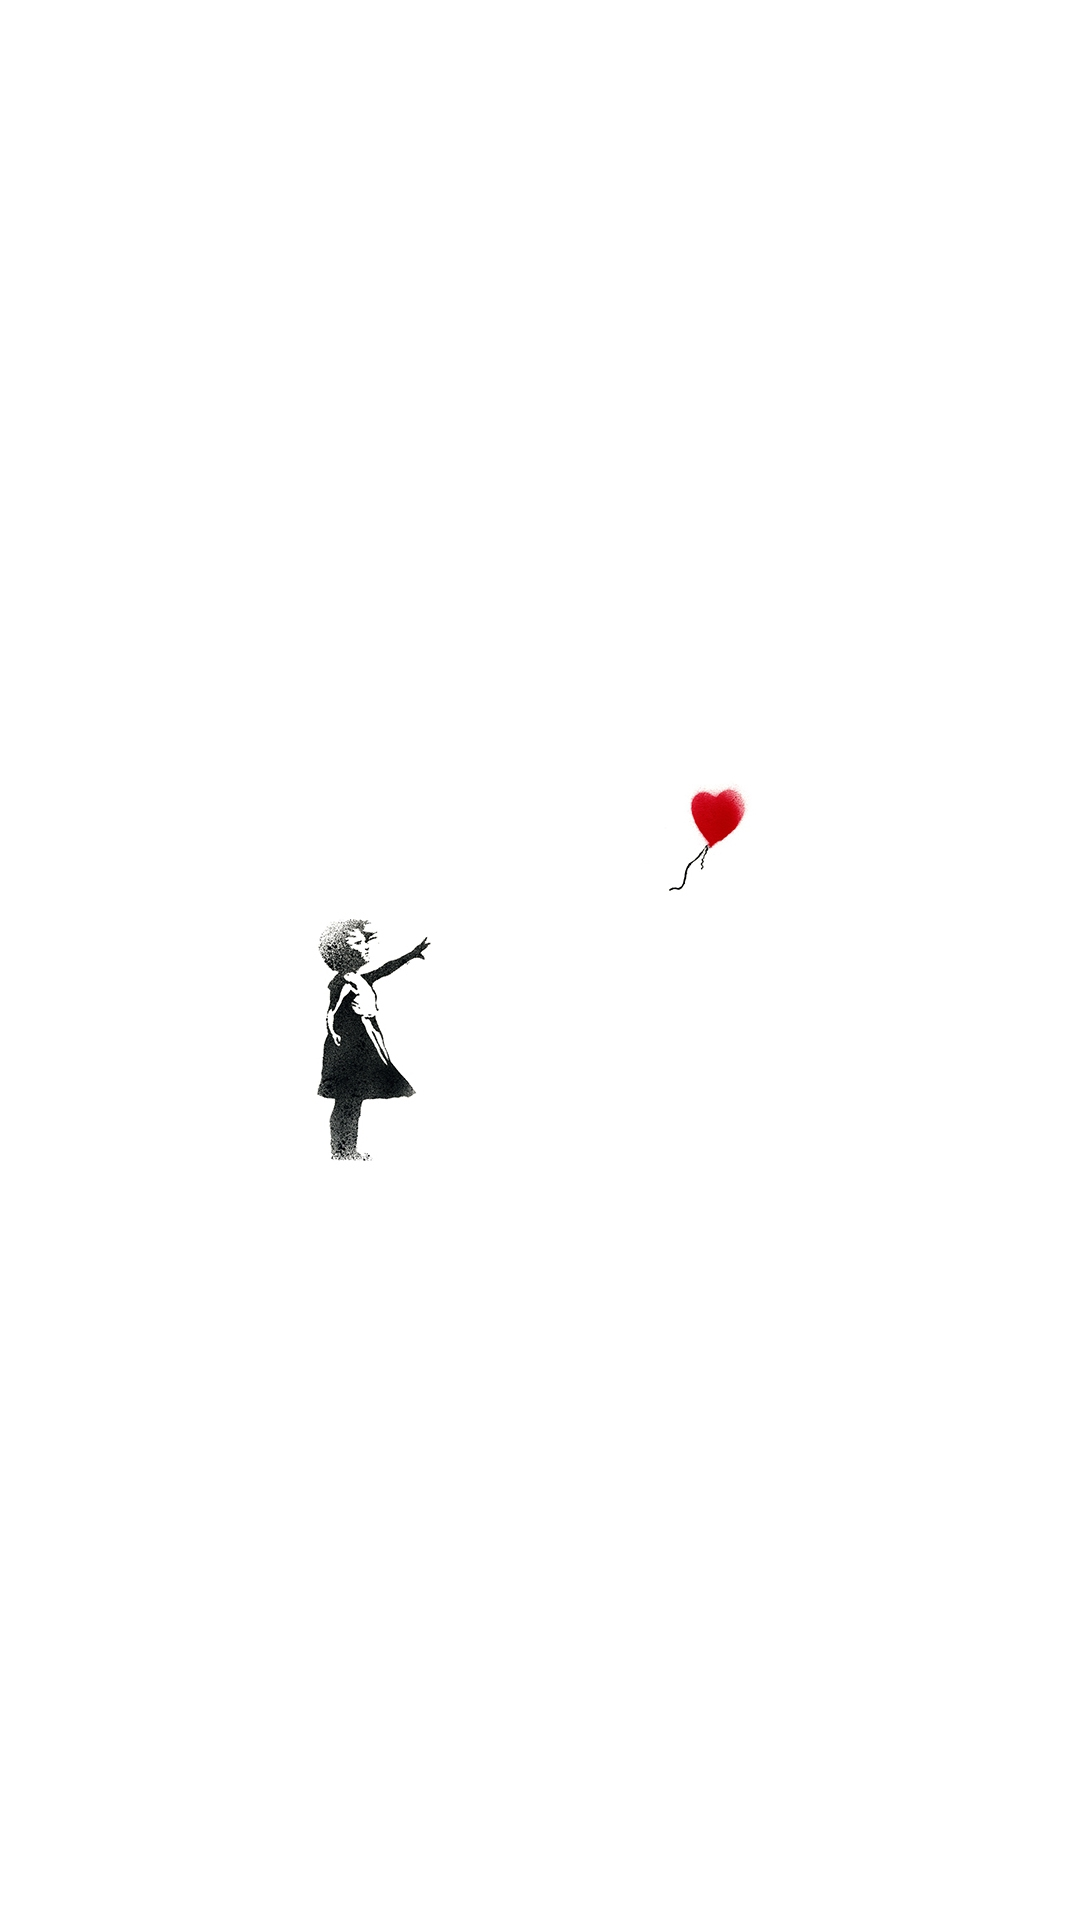 iPhone wallpaper banksy girl of hope 3Wallpapers : notre sélection de fonds d'écran du 10/04/2018